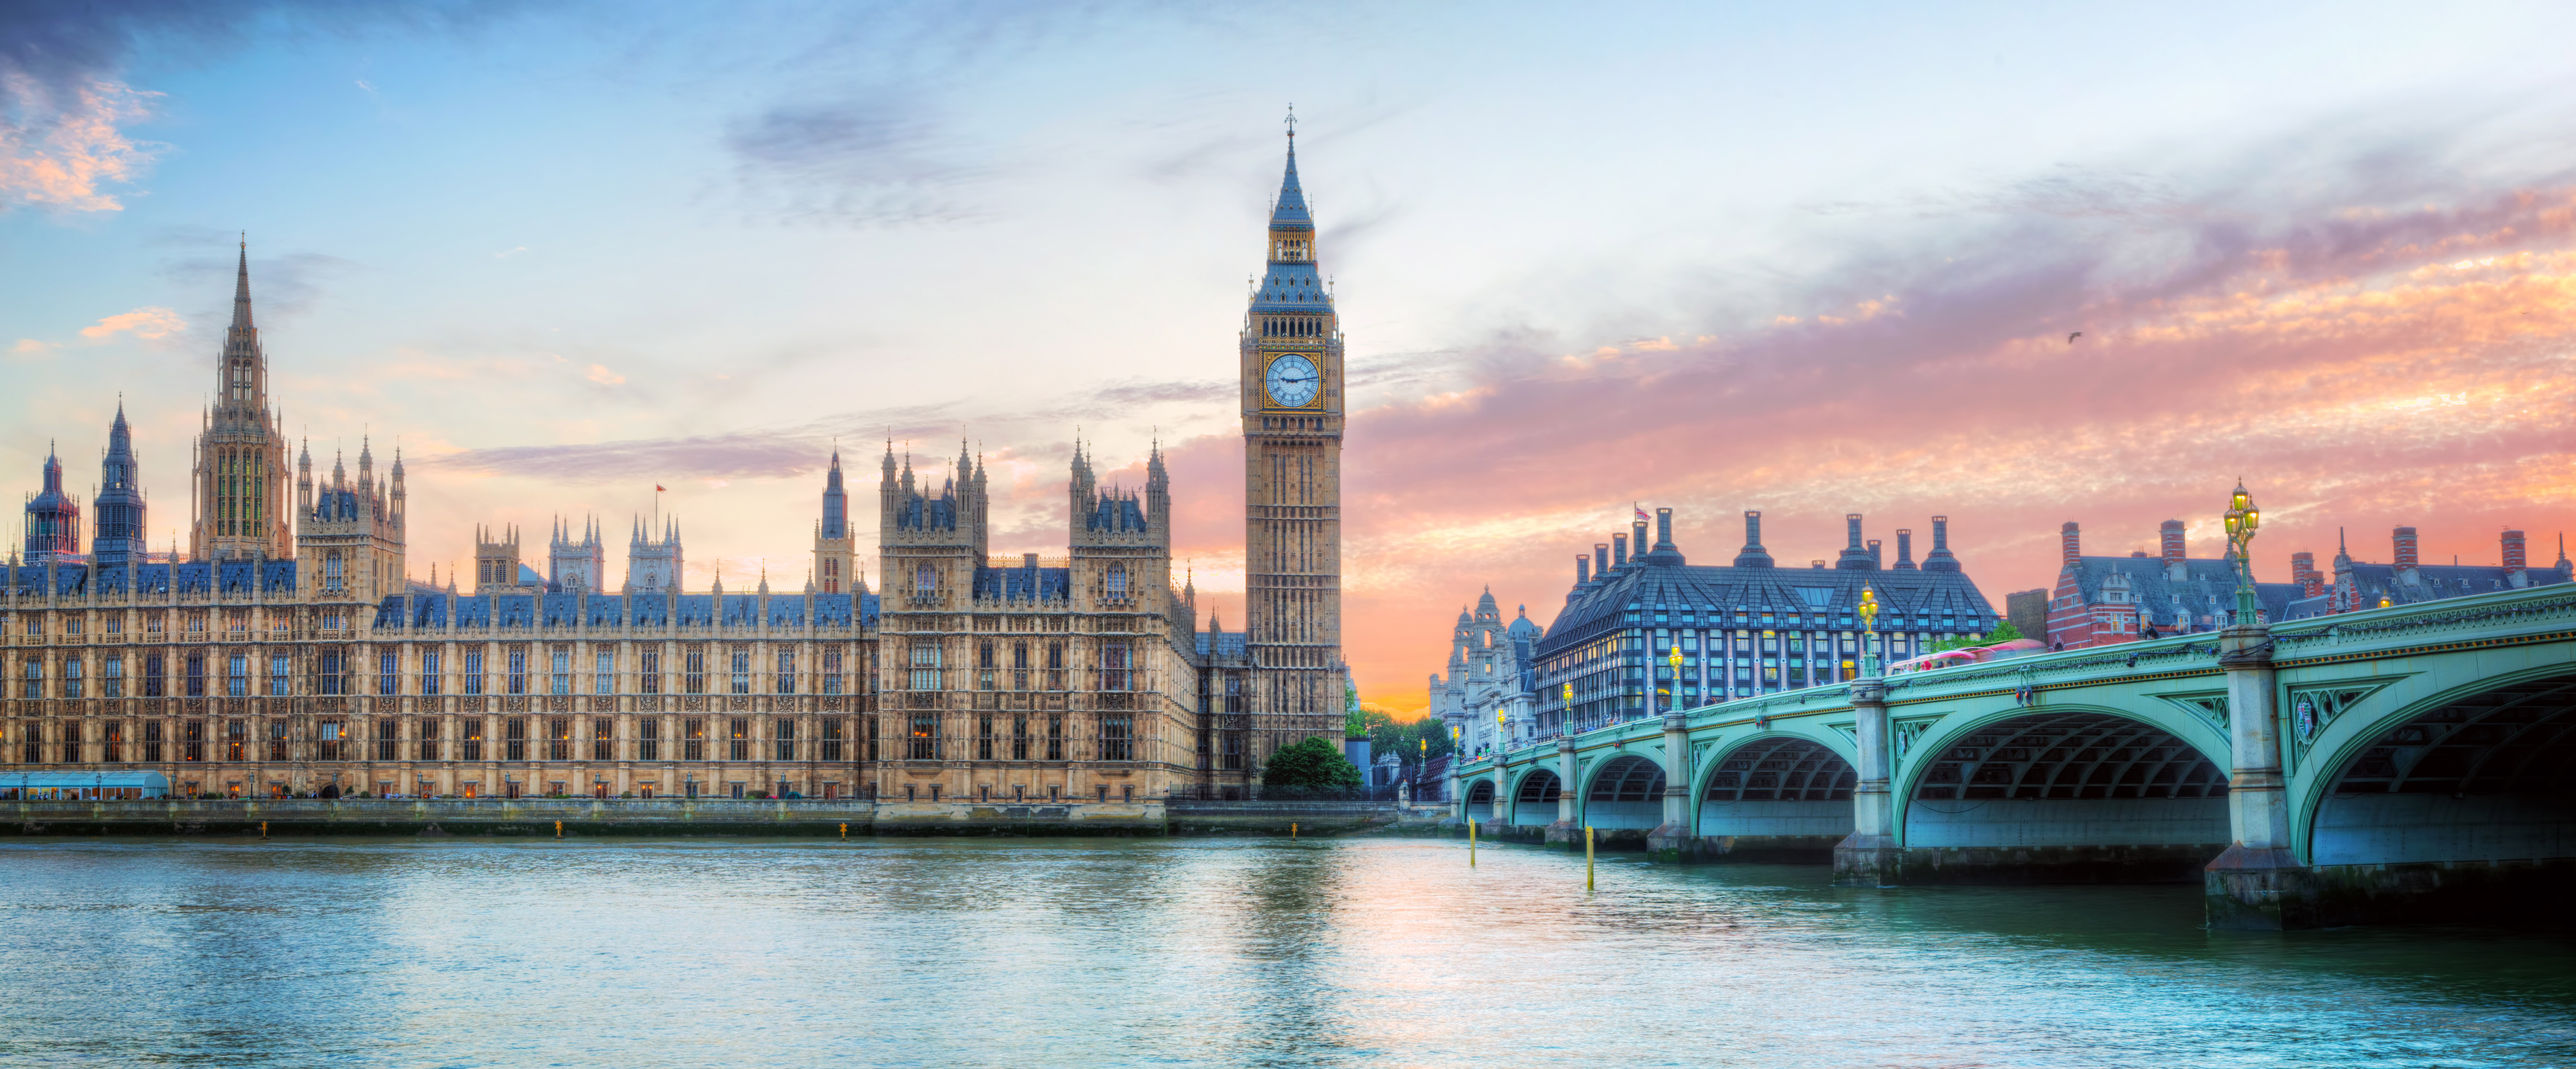 Westminster secures prestigious Palace of Westminster Contract